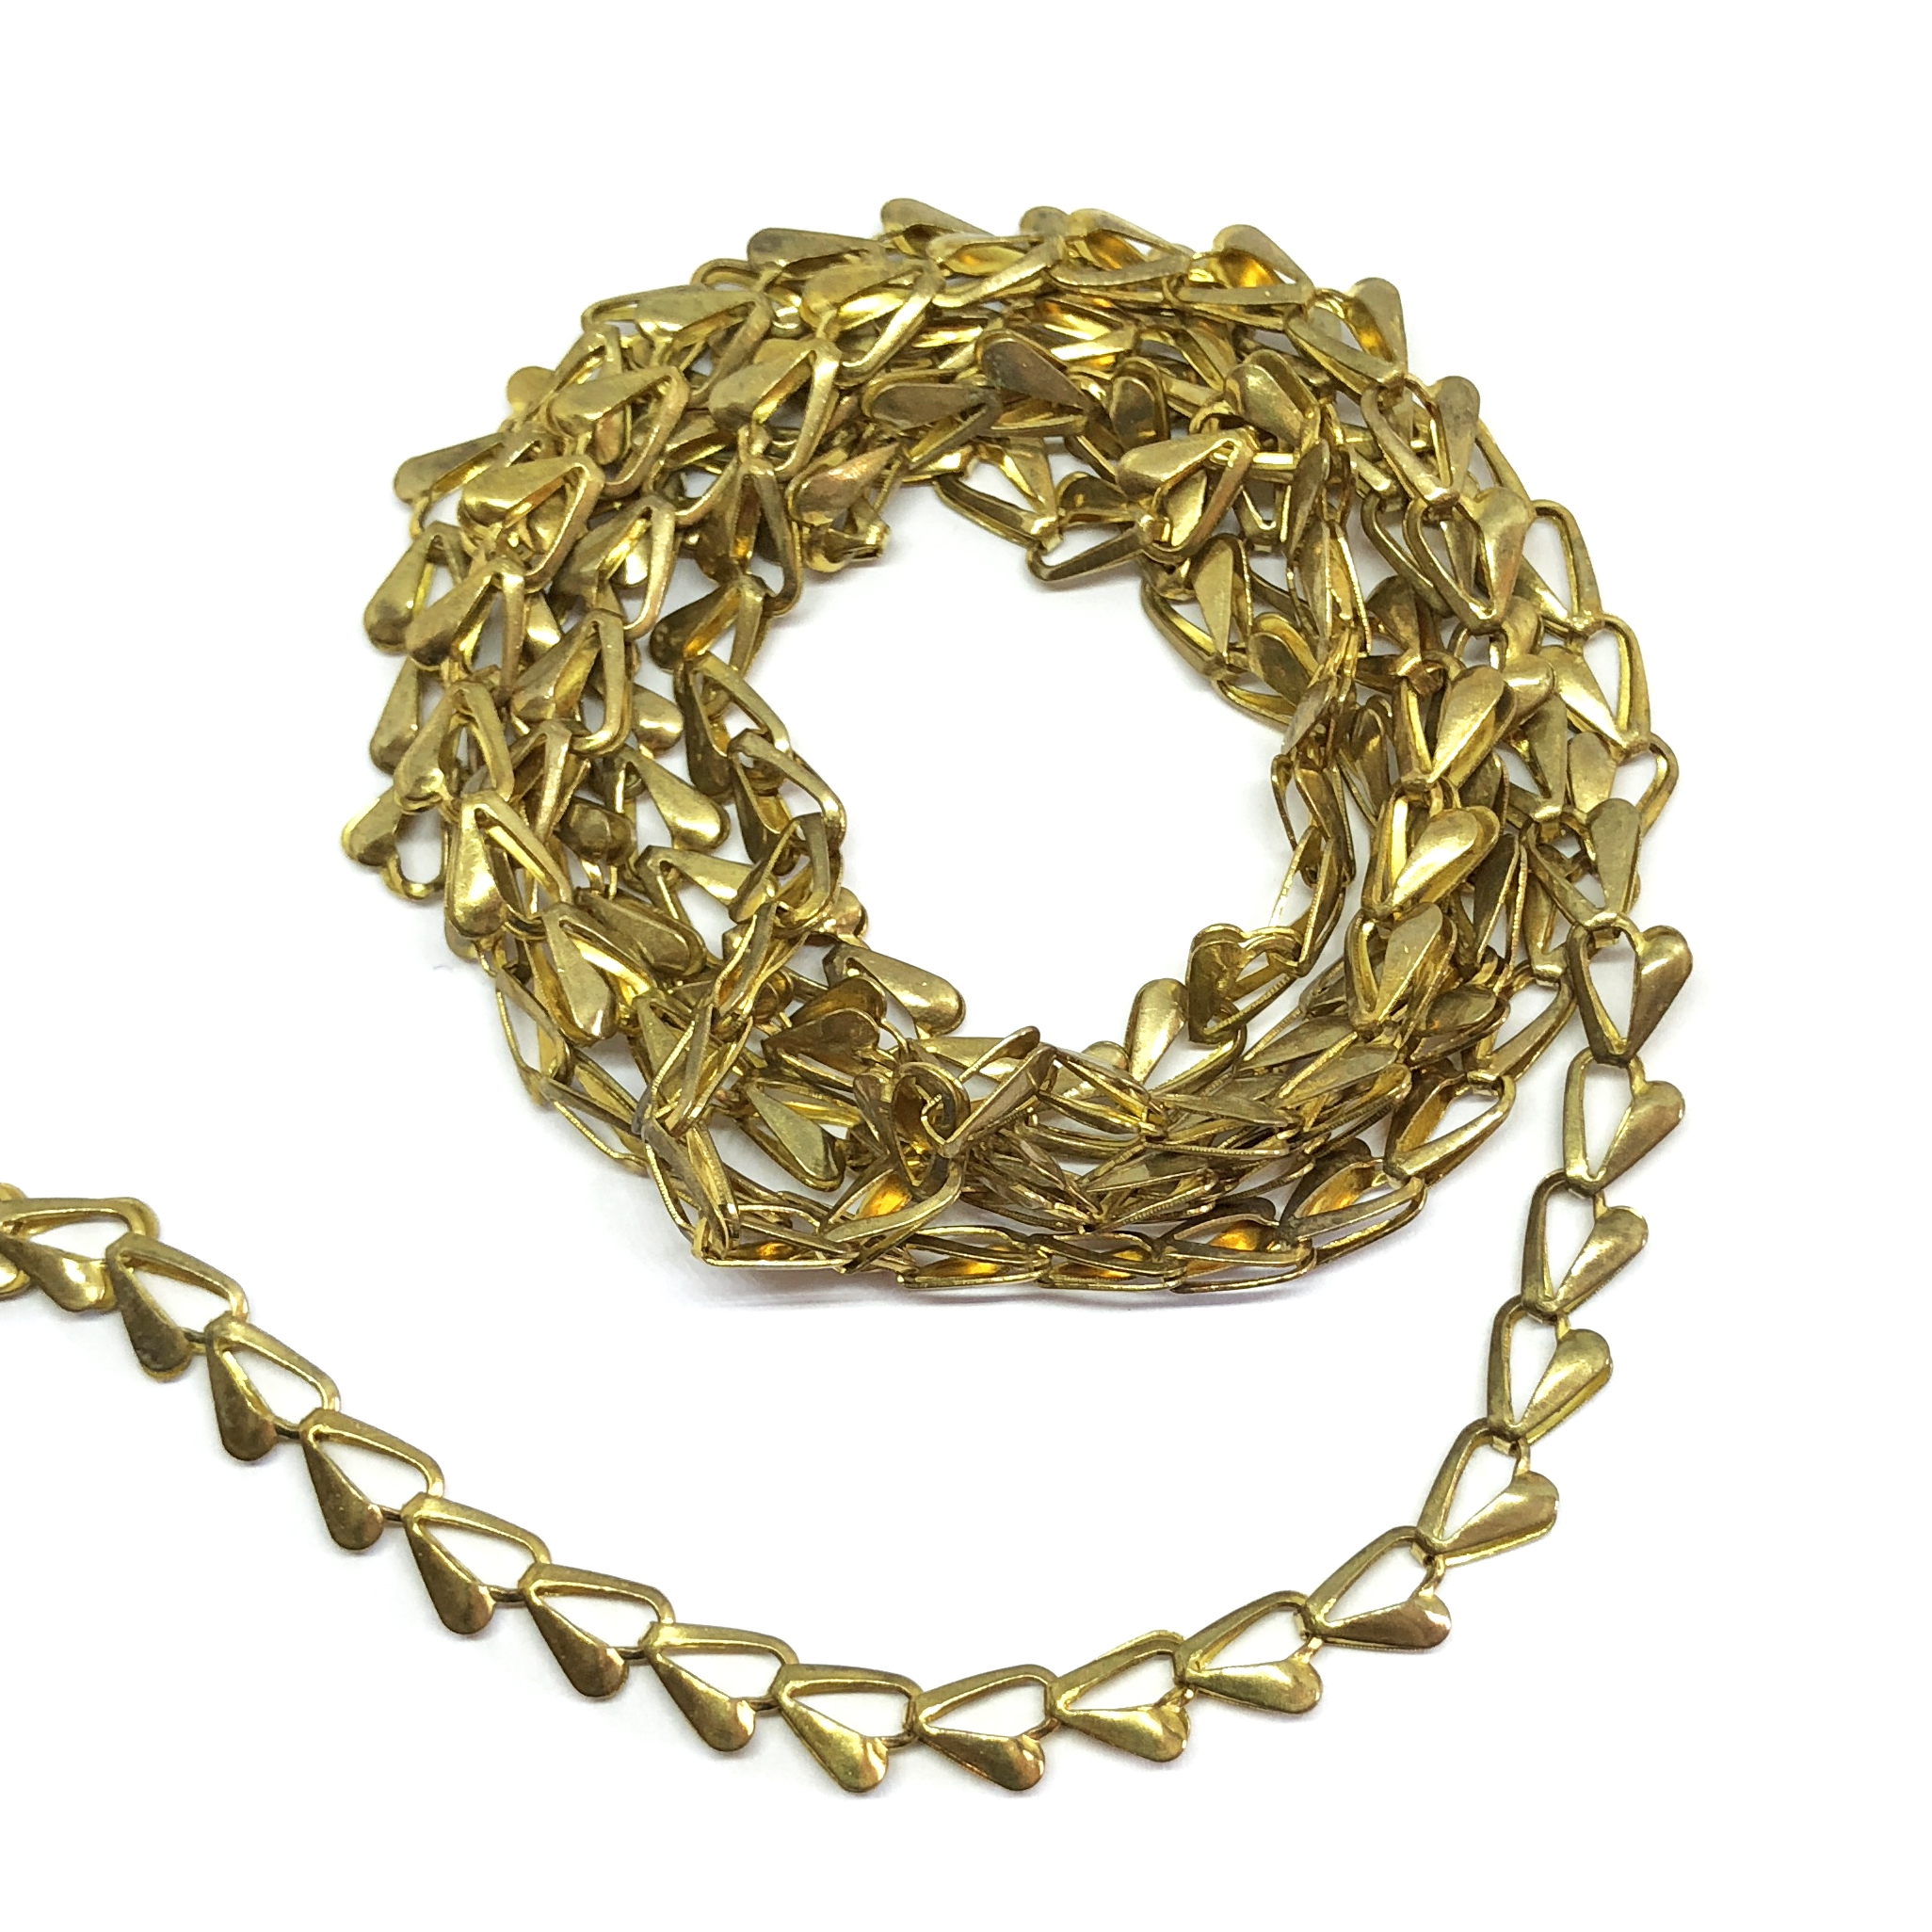 fold over heart chain, brass chain, 08072, B'sue Boutiques, nickel free, us made chain, heart chain, jewelry chain, jewelry making chain, bracelet chain, necklace chain, jewelry supplies, jewelry findings, patina brass, beading chain